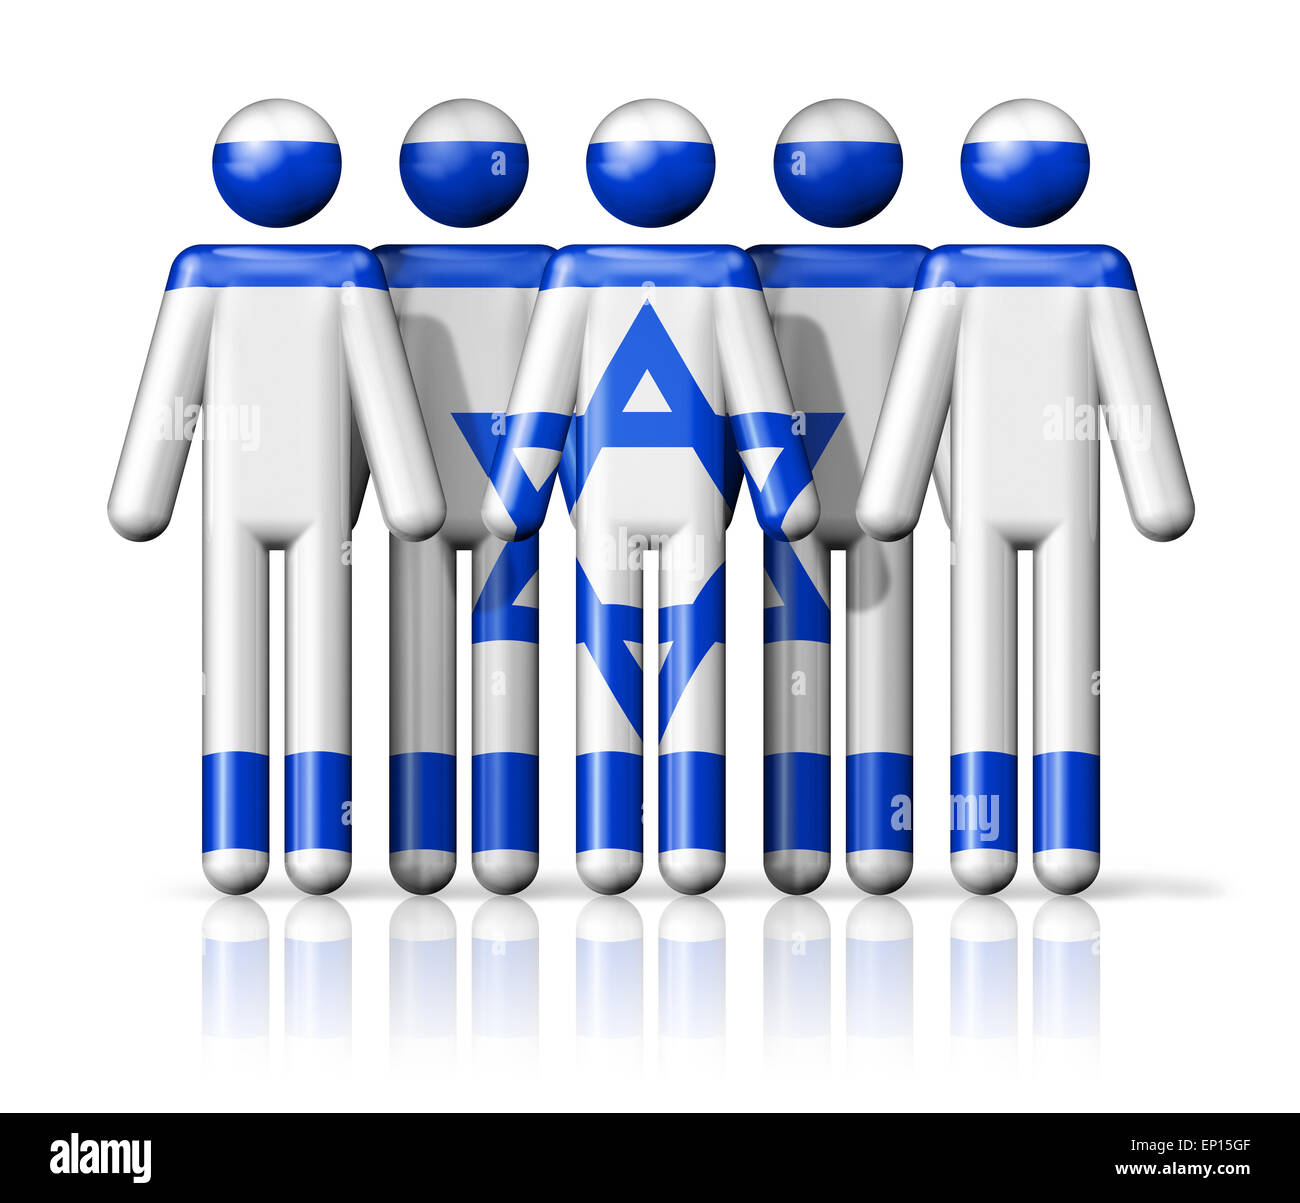 Flag of Israel on stick figure - national and social community symbol 3D icon Stock Photo